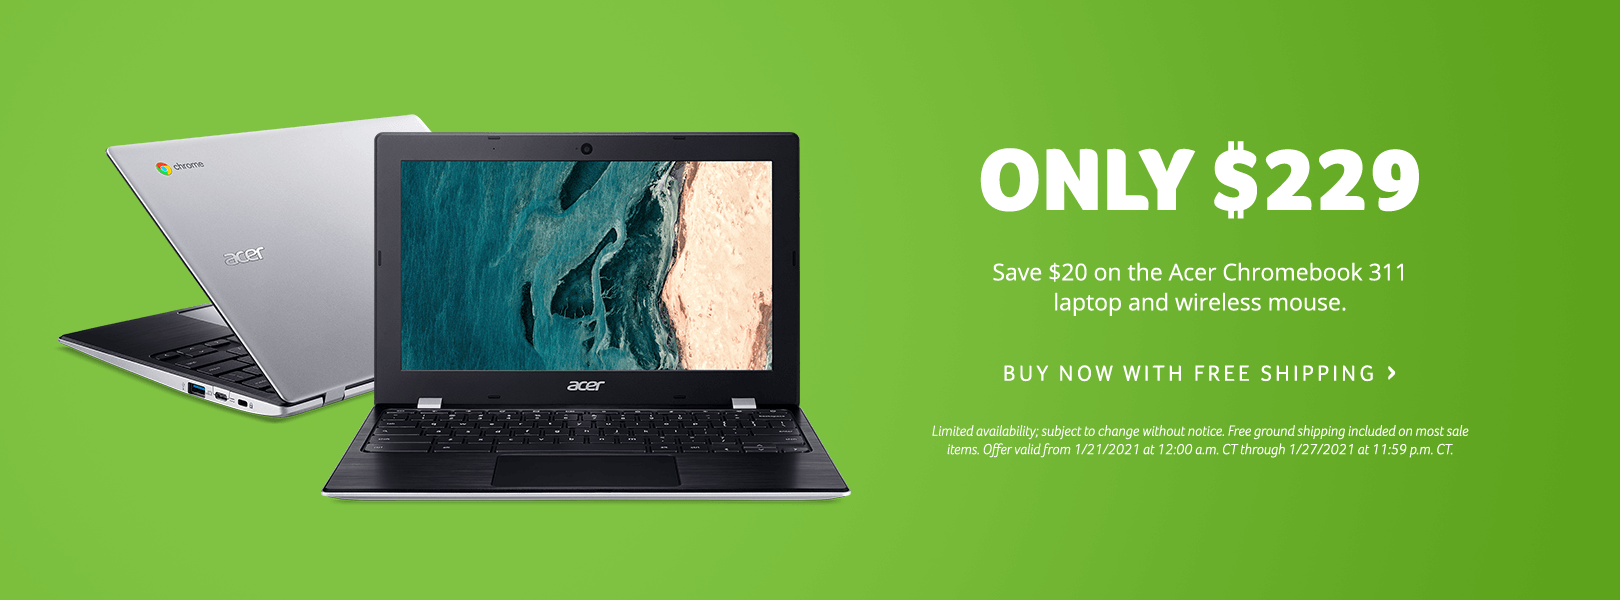 Save $20 on the Acer Chromebook 311 Laptop and Wireless Mouse